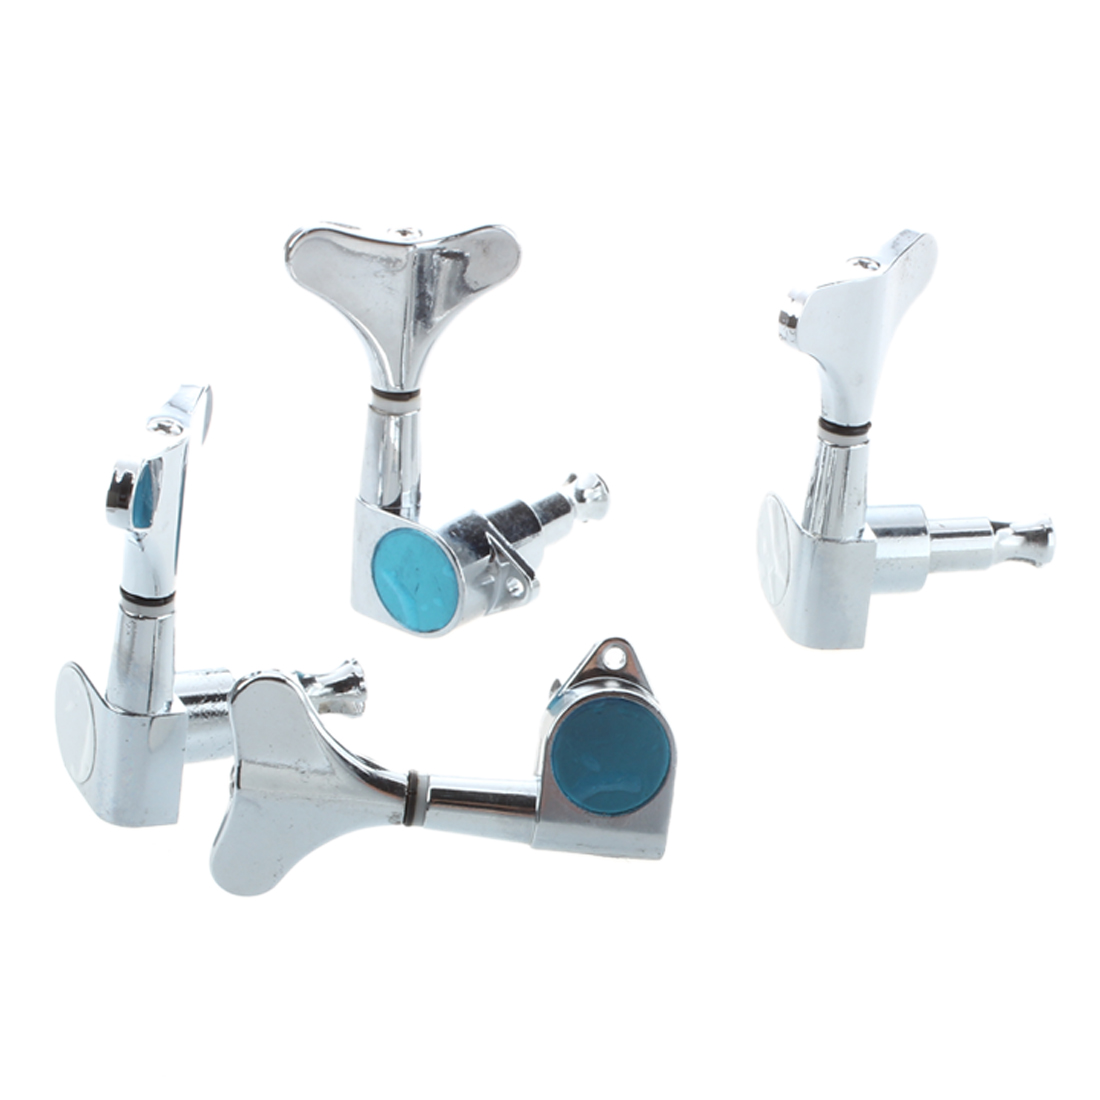 SALES 5xChrome Sealed Bass Tuning Pegs Tuners Machine Heads 2L + 2R кресло детское бюрократ kd 2 pk tw 13a розовый tw 13a